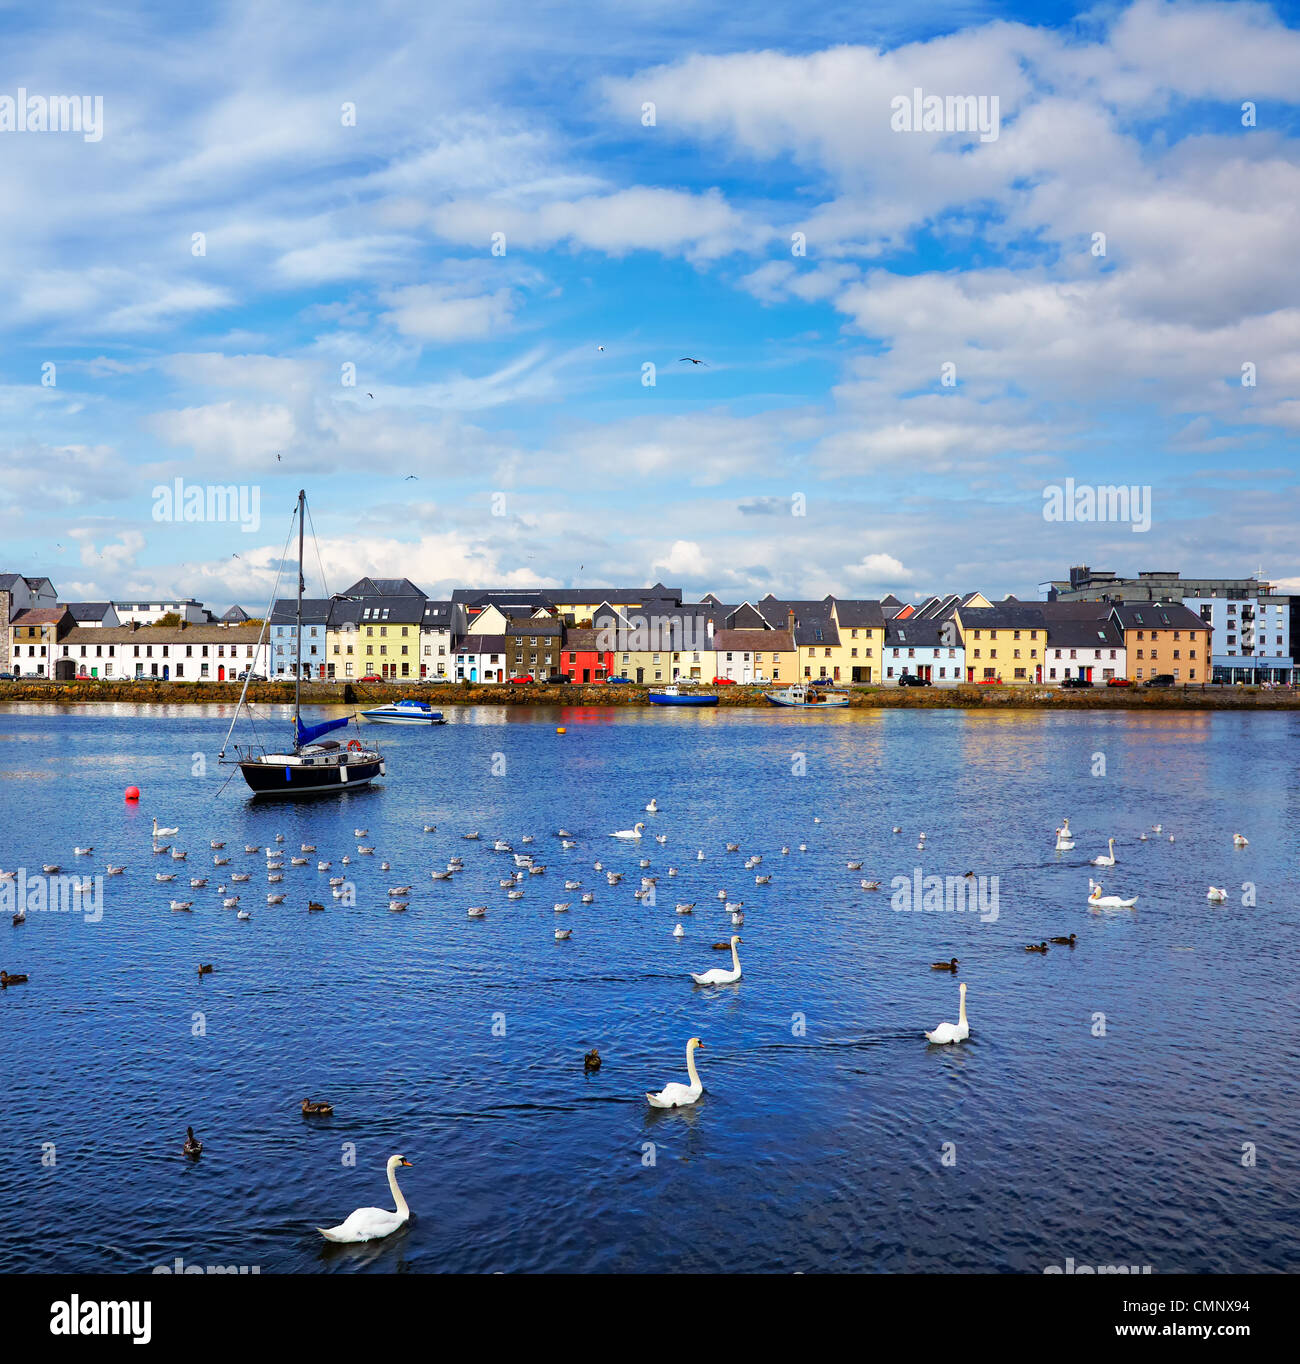 The Claddagh in Galway city during summertime, Ireland. - Stock Image